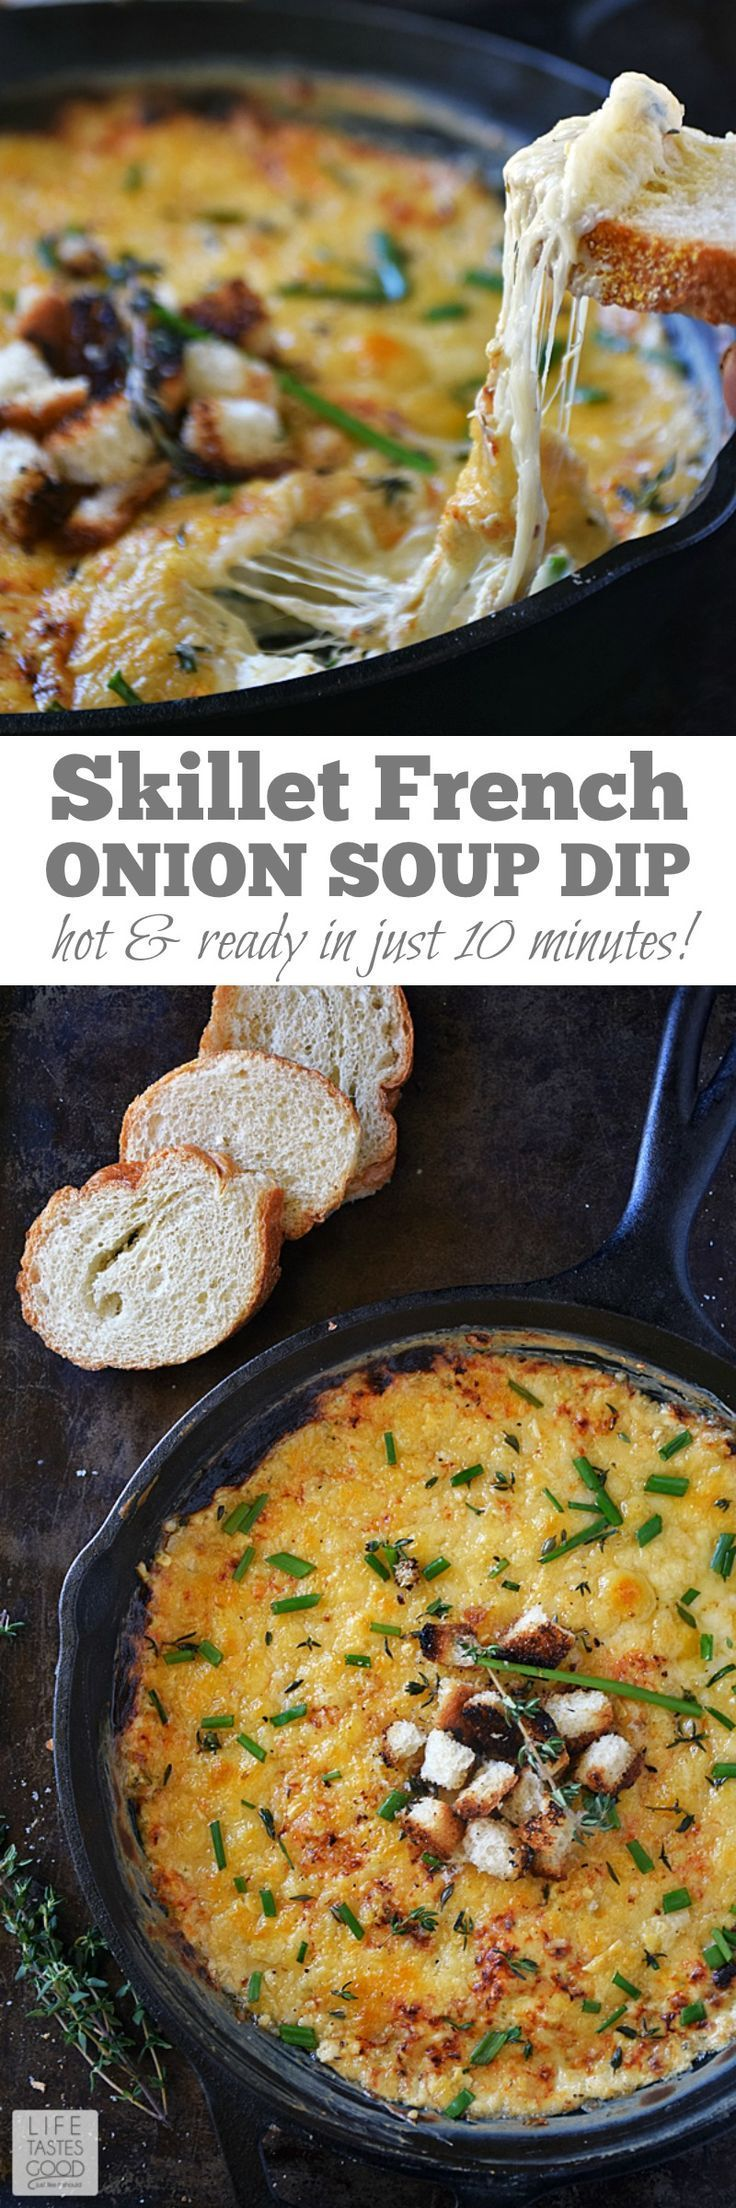 Creamy, cheesy, and savory, Skillet French Onion Soup Dip   by Life Tastes Good tastes like classic French Onion Soup and is so easy to make! Mixing the ingredients all in one skillet, while heating, is the key to having it hot and ready in just 10 minutes! This delicious appetizer is a real crowd pleaser! #ad #GameTimeDips #LTGrecipes